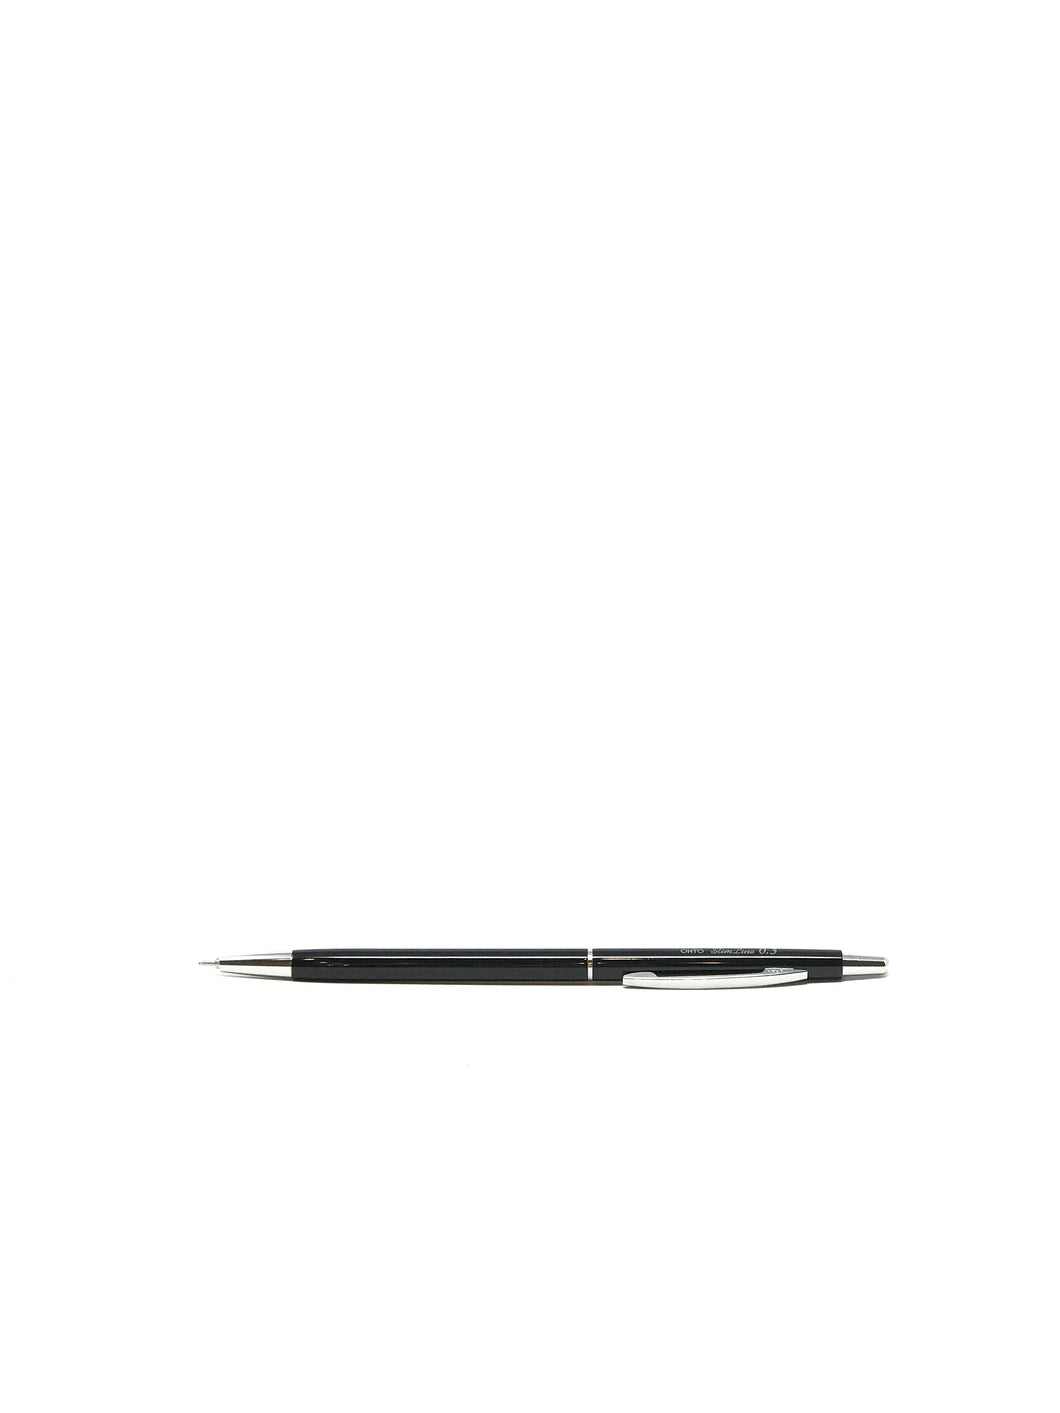 Ohto Black Slim Line .3 mm Ballpoint